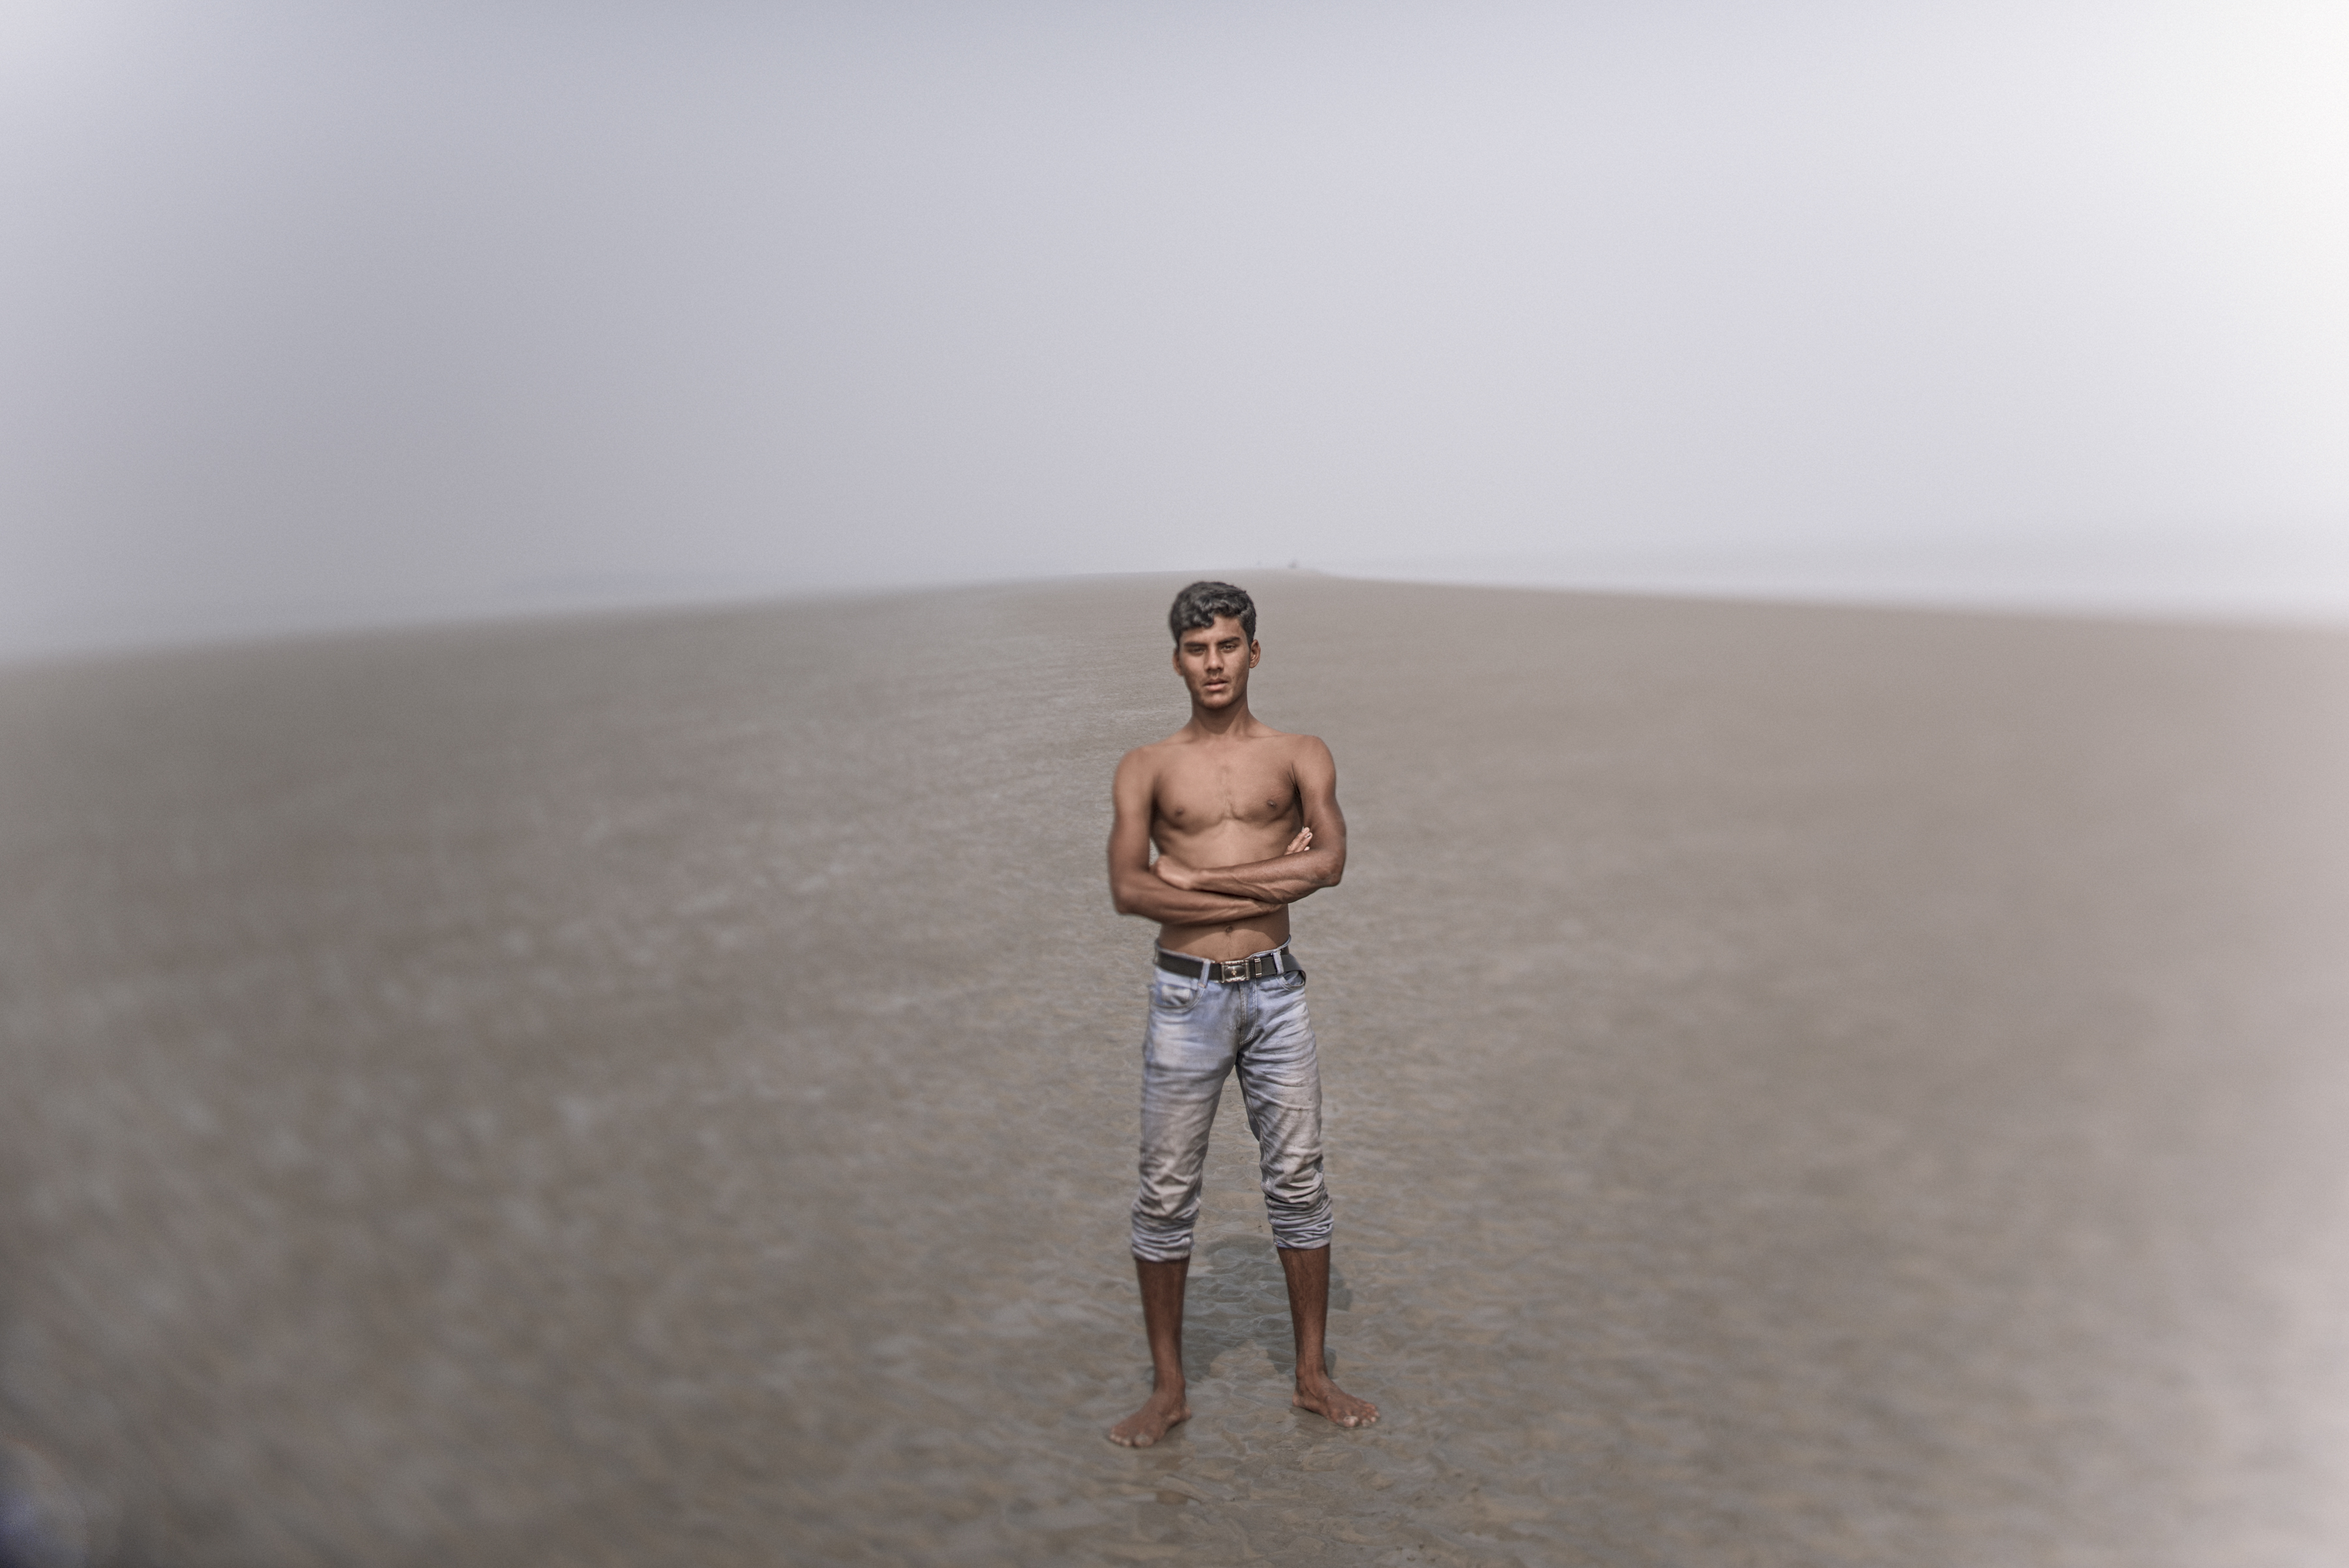 A young fisherman is pictured in Bangladesh, where rising water has caused many problems. Photo by Ismail Ferdous